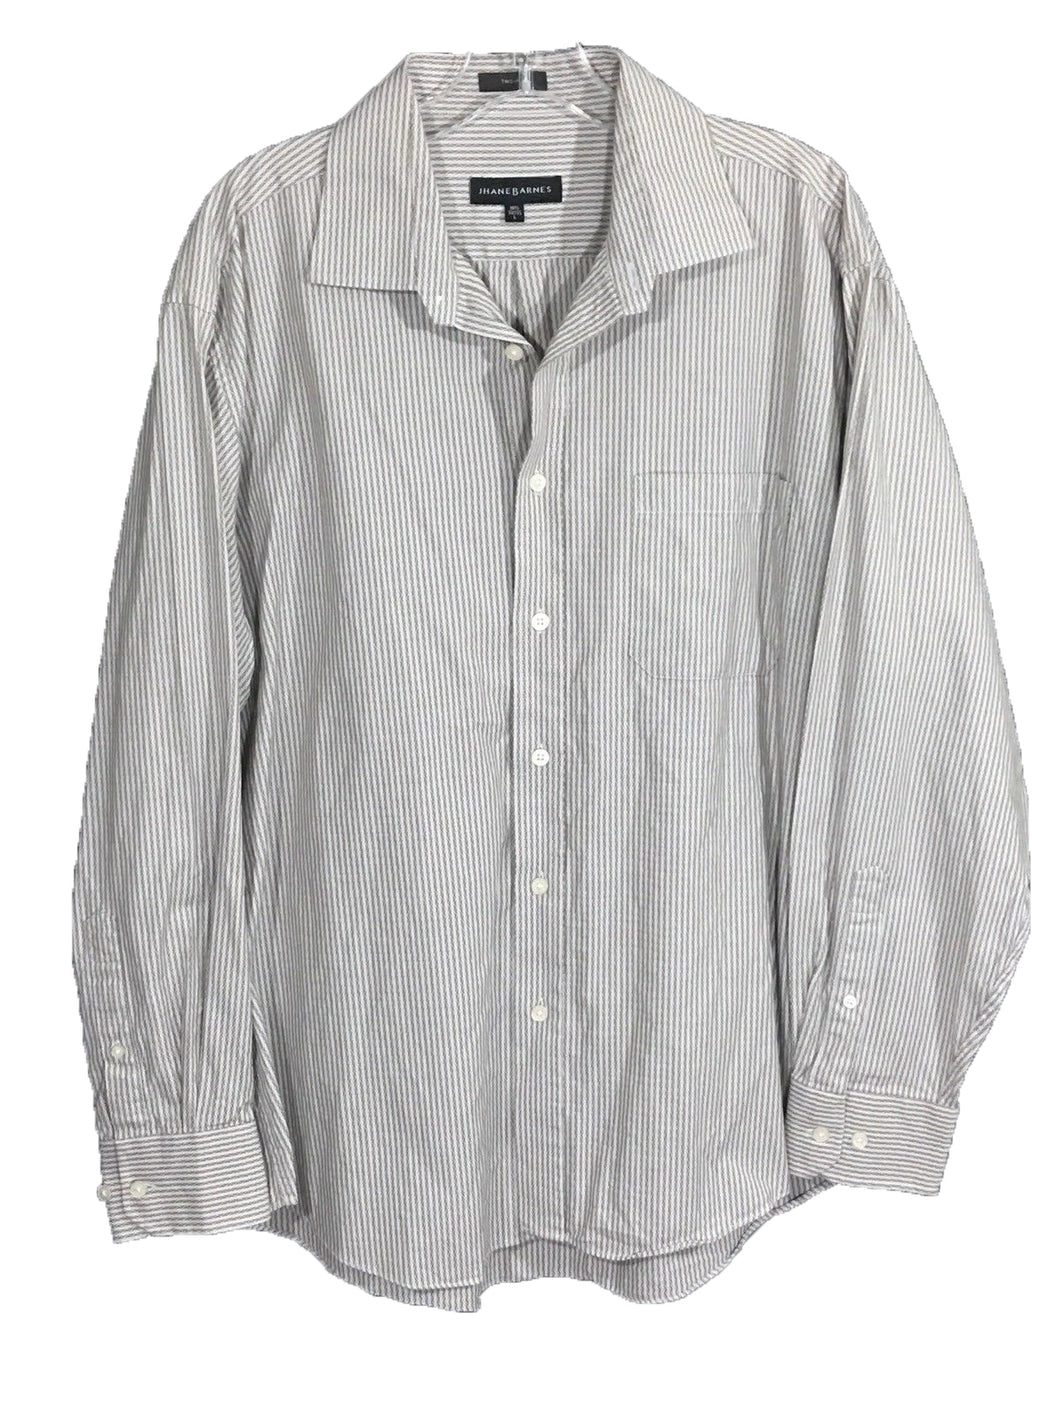 Jhane Barnes Gray White Striped Zig Zag Aztec Button LS Shirt Mens L 16.5 34/35 - Preowned - FunkyCrap Boutique